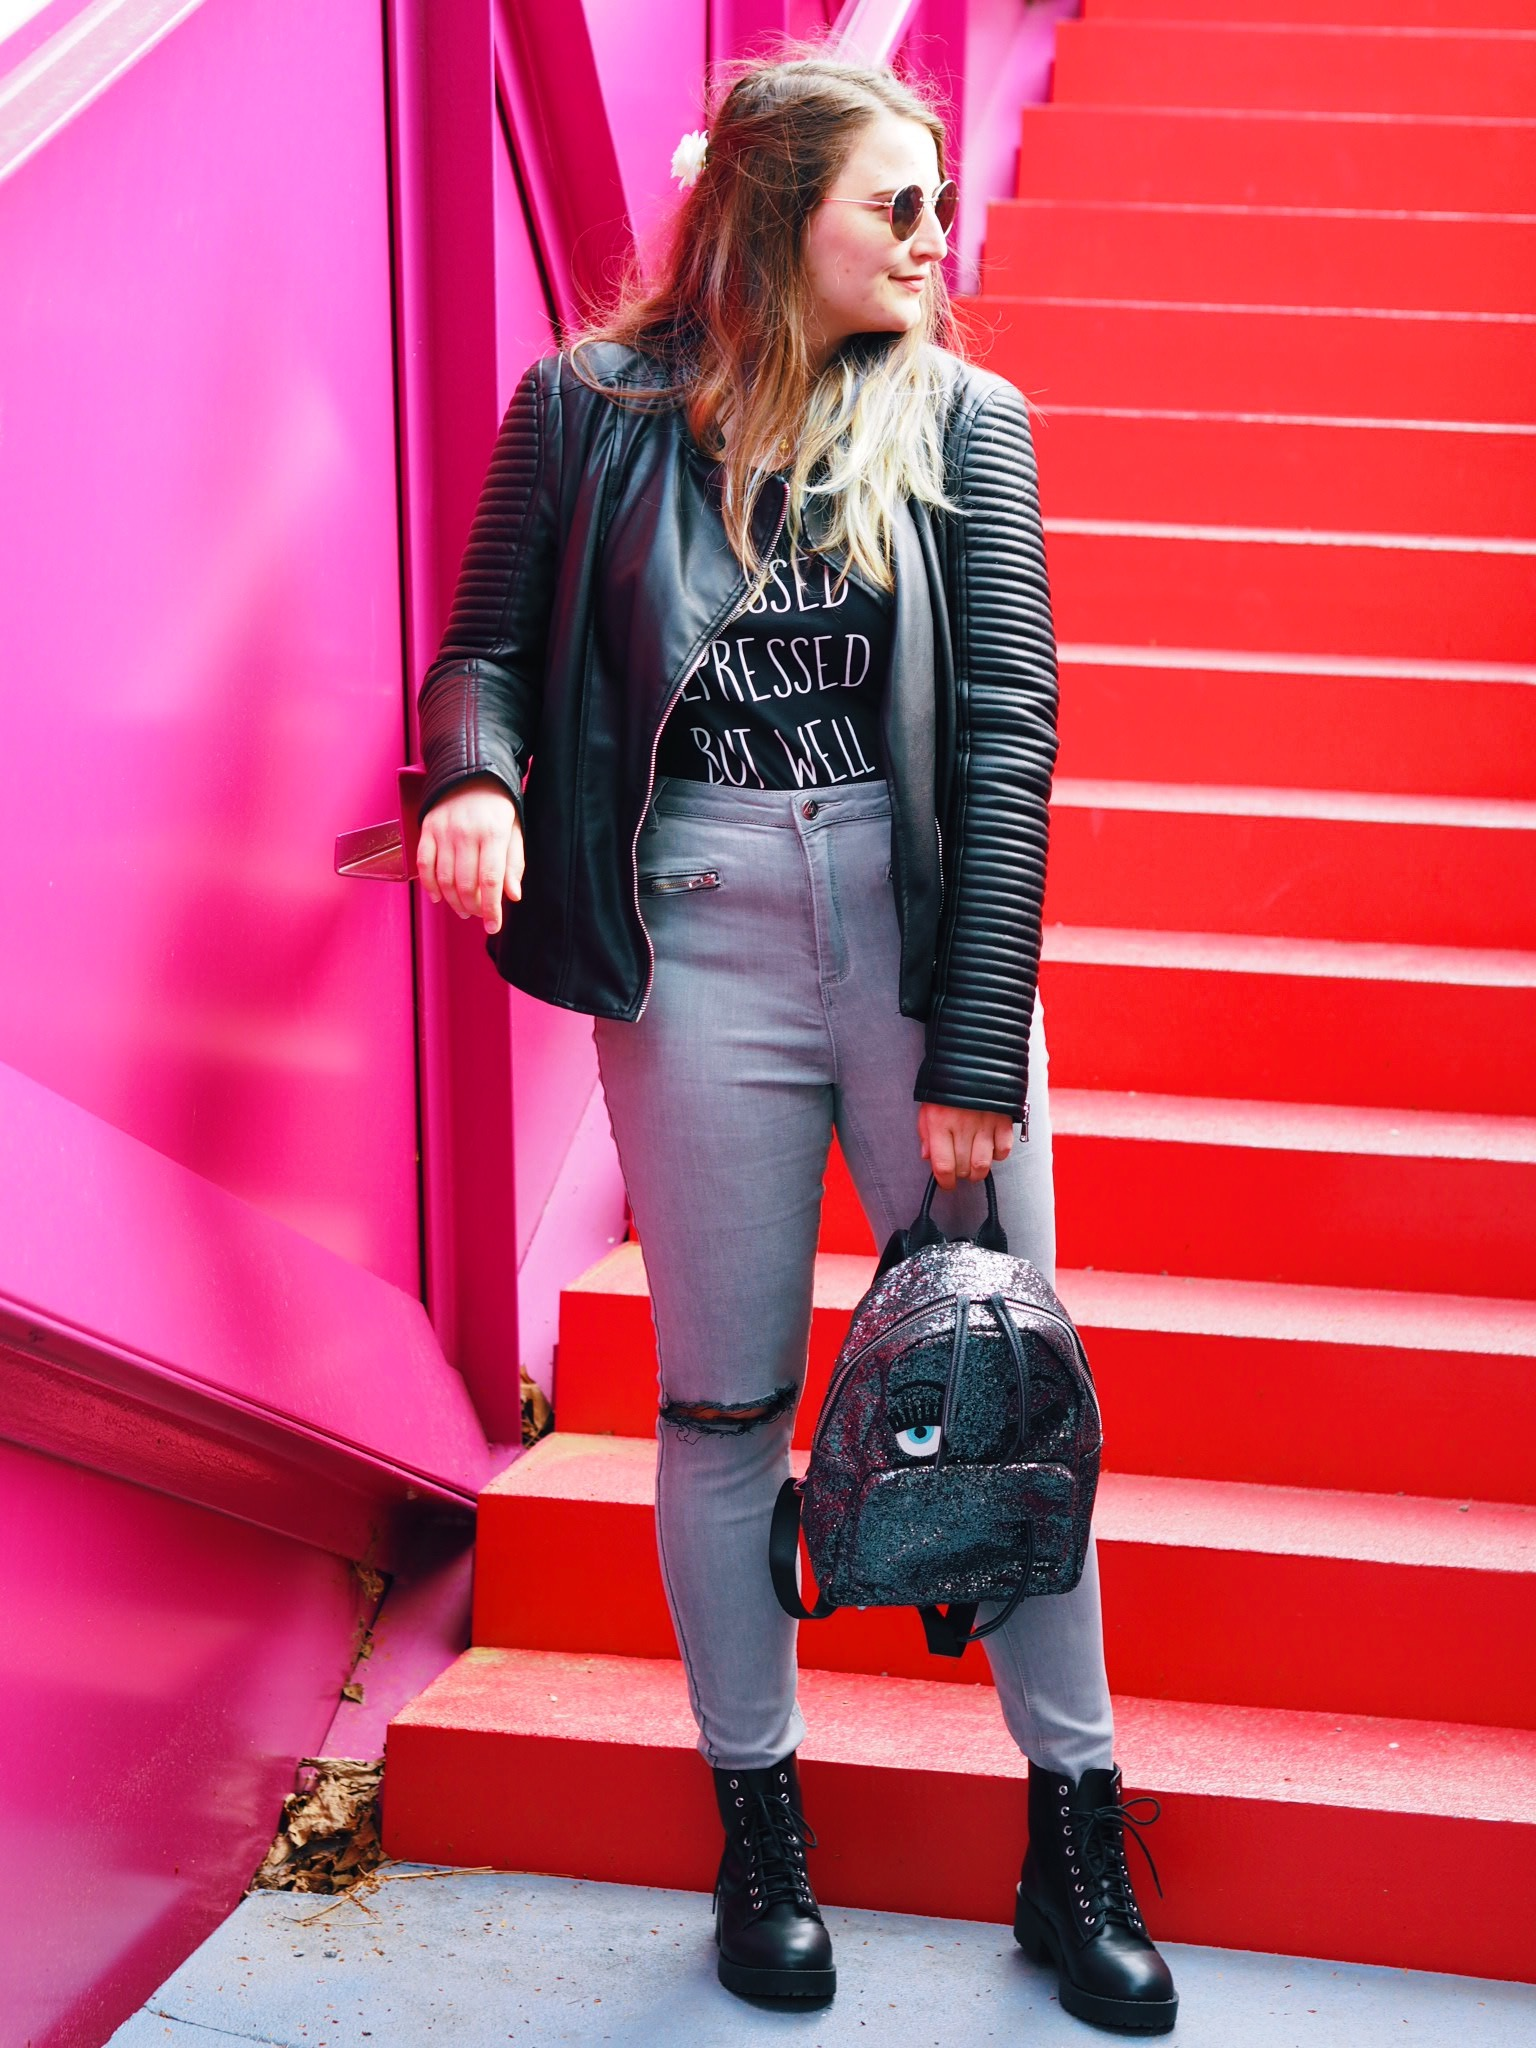 rockiges outfit more dolce vita